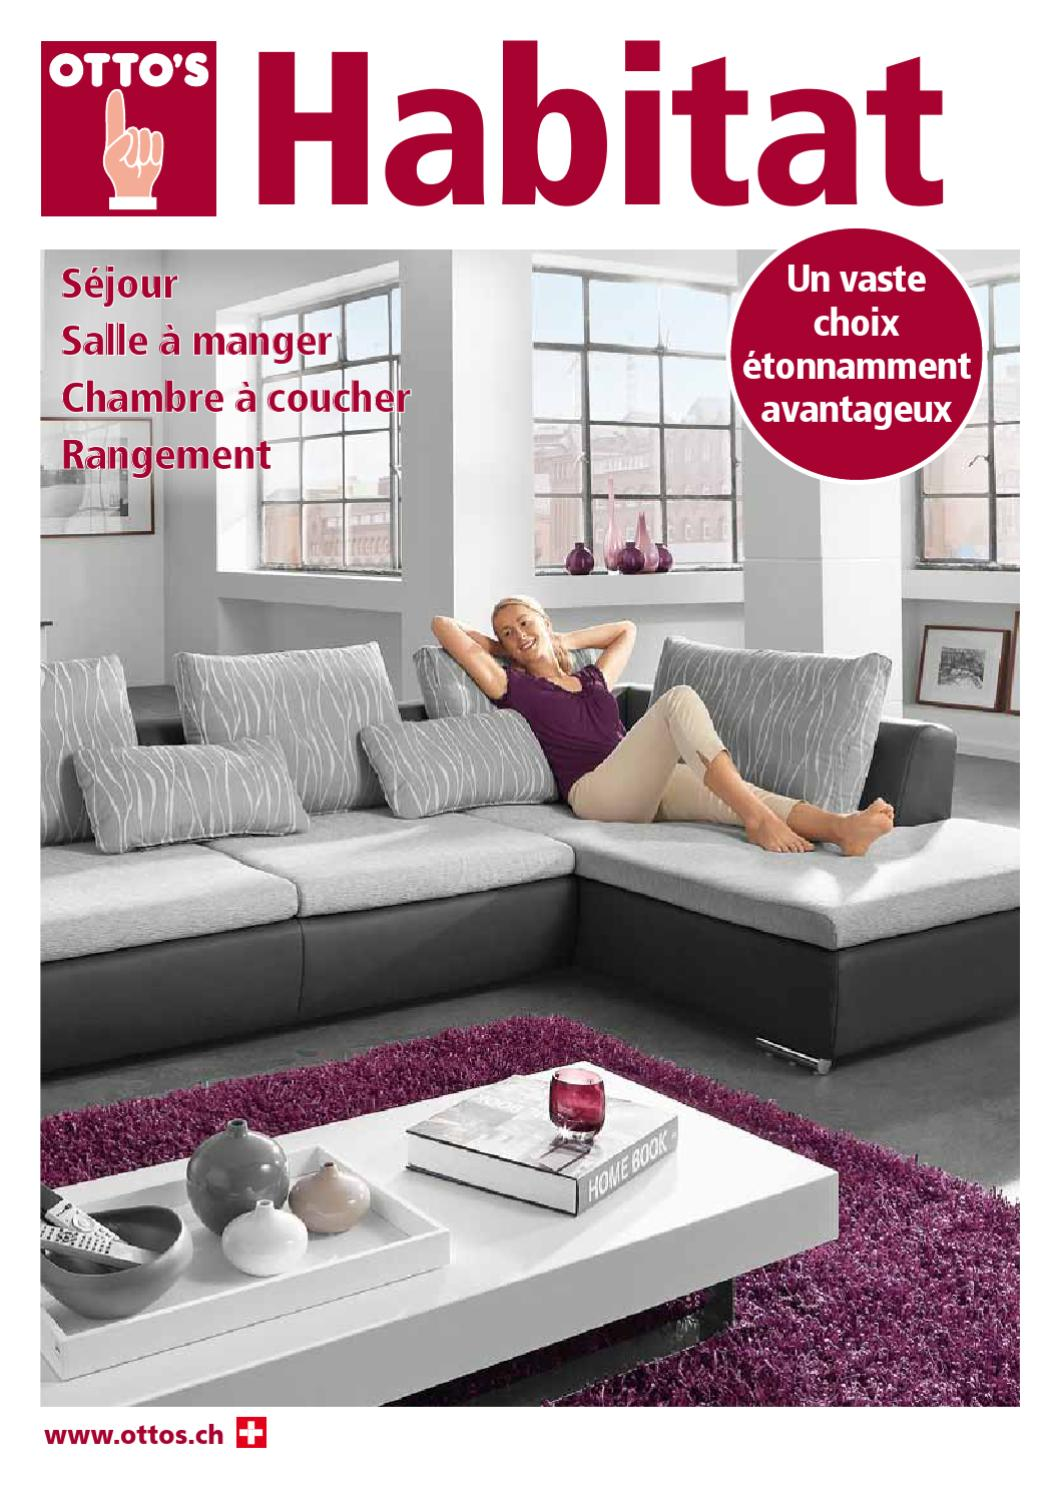 Otto 39 s catalogue de meubles 2011 by otto 39 s ag issuu for Otto s meuble yverdon